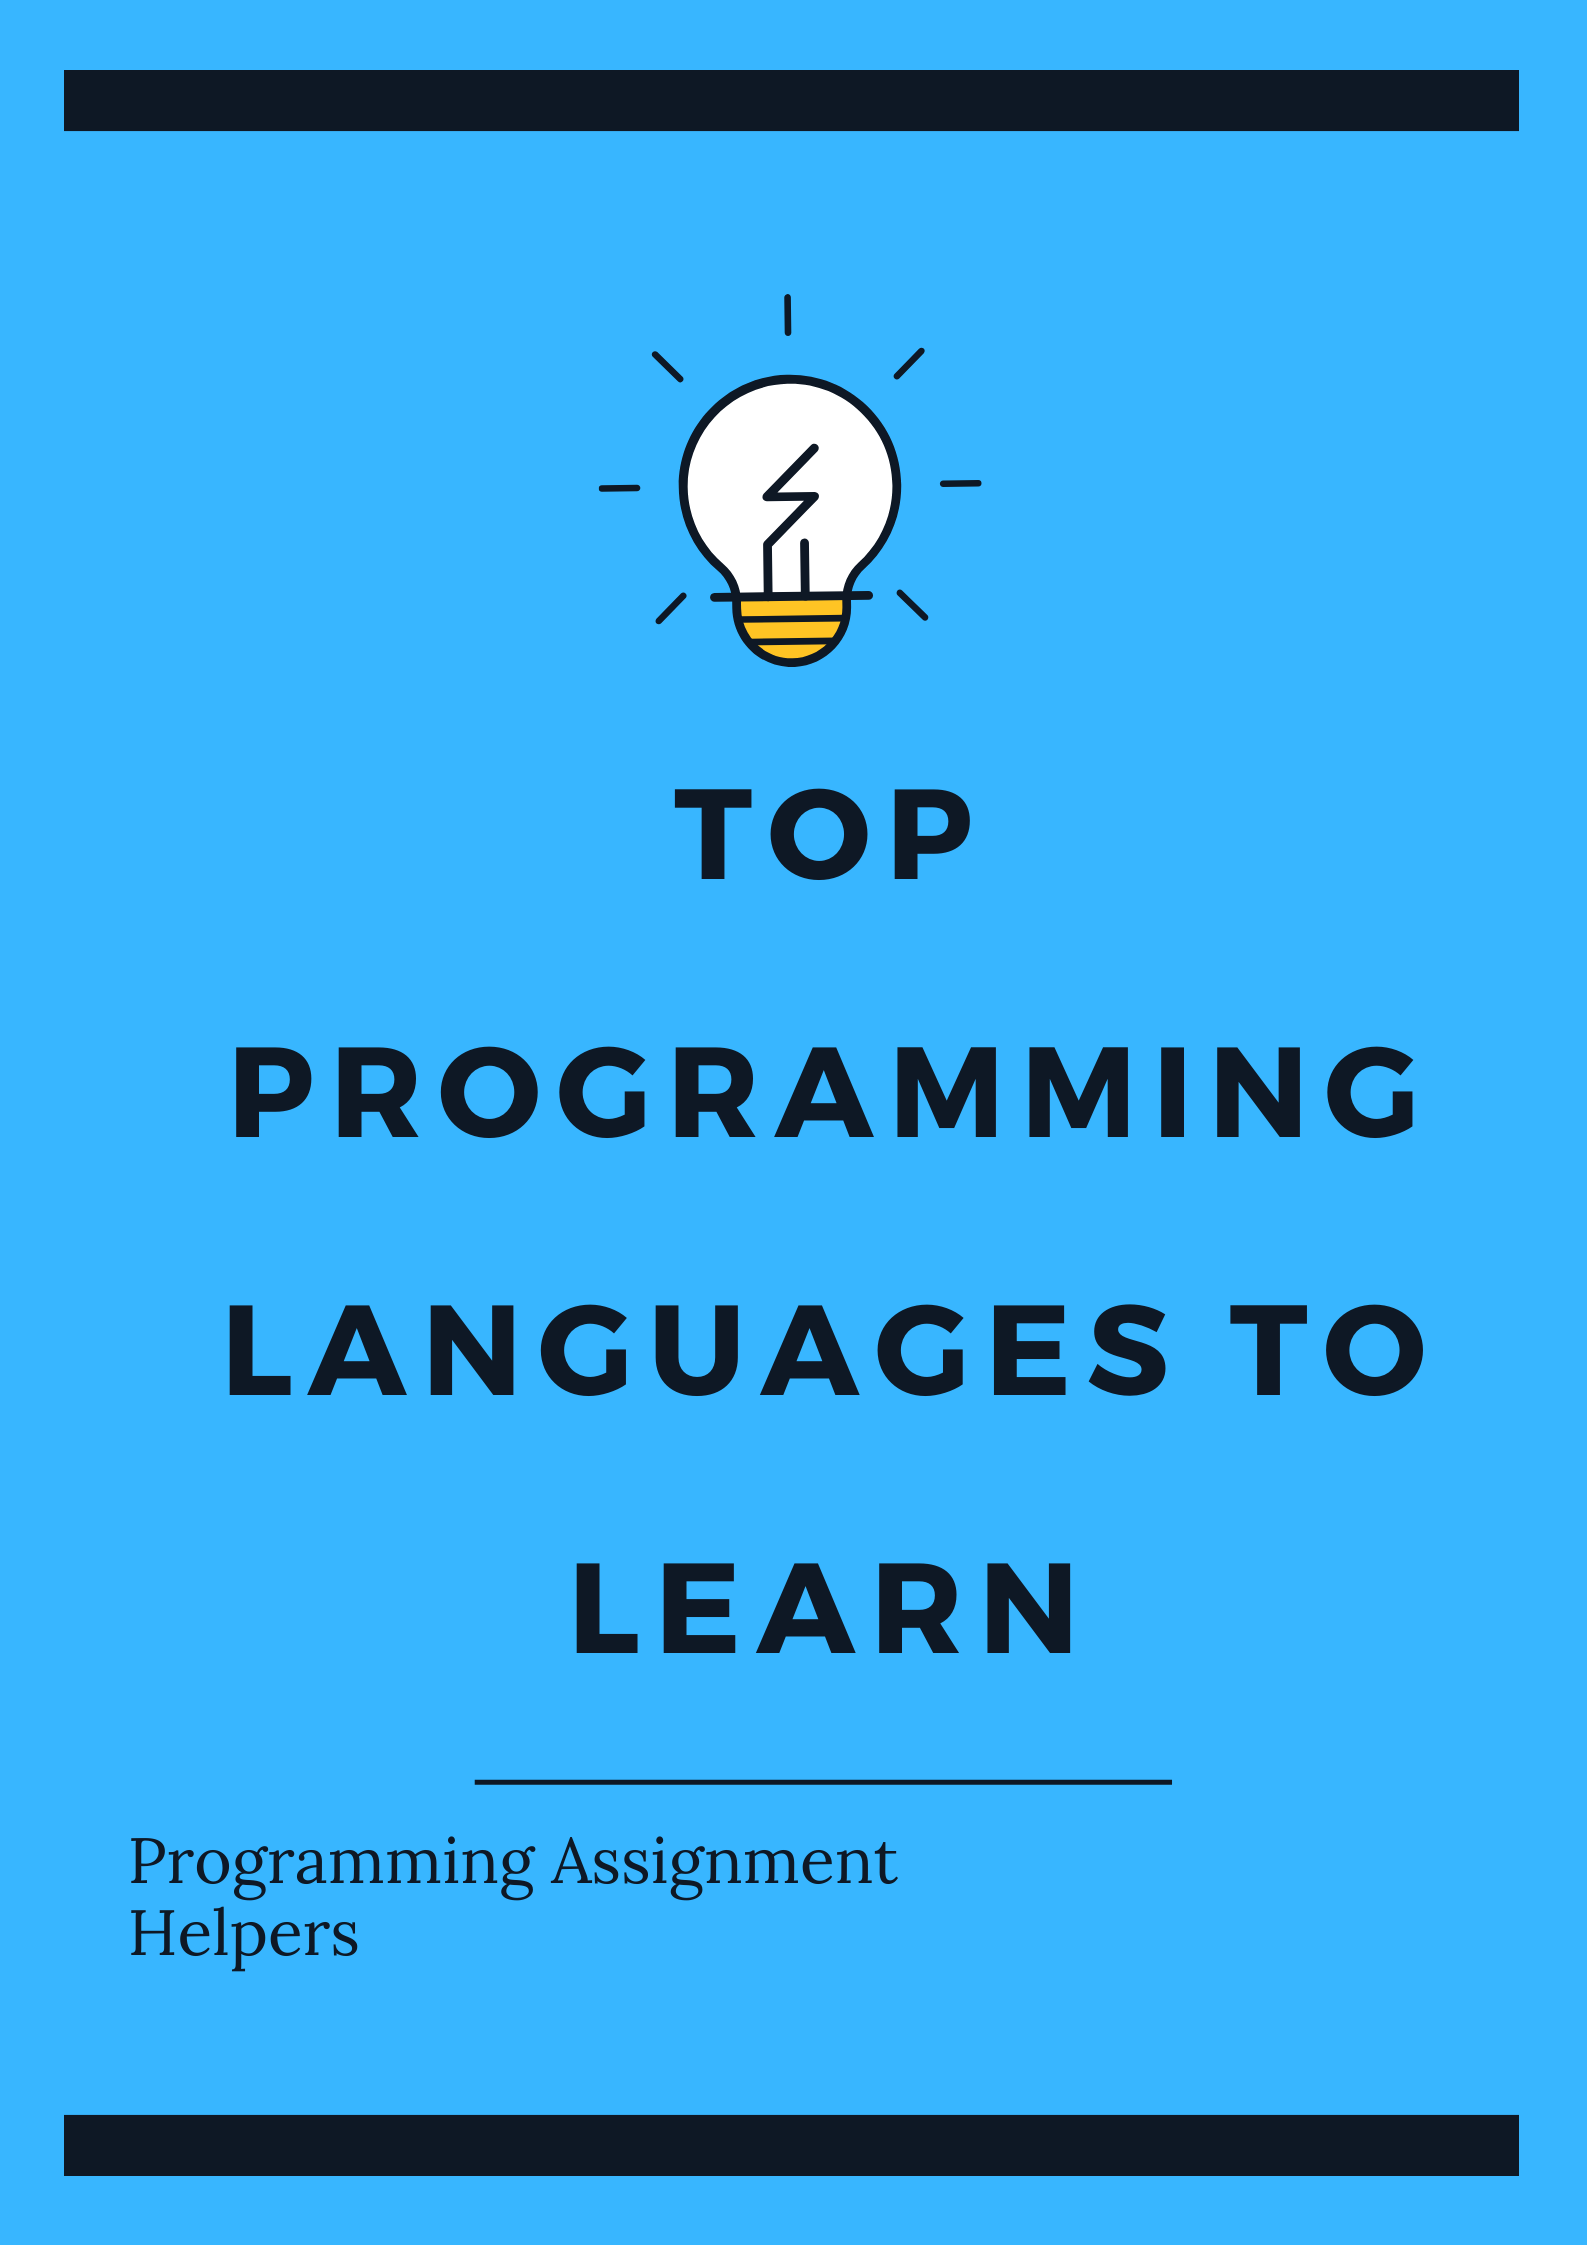 Programming Languages To Learn